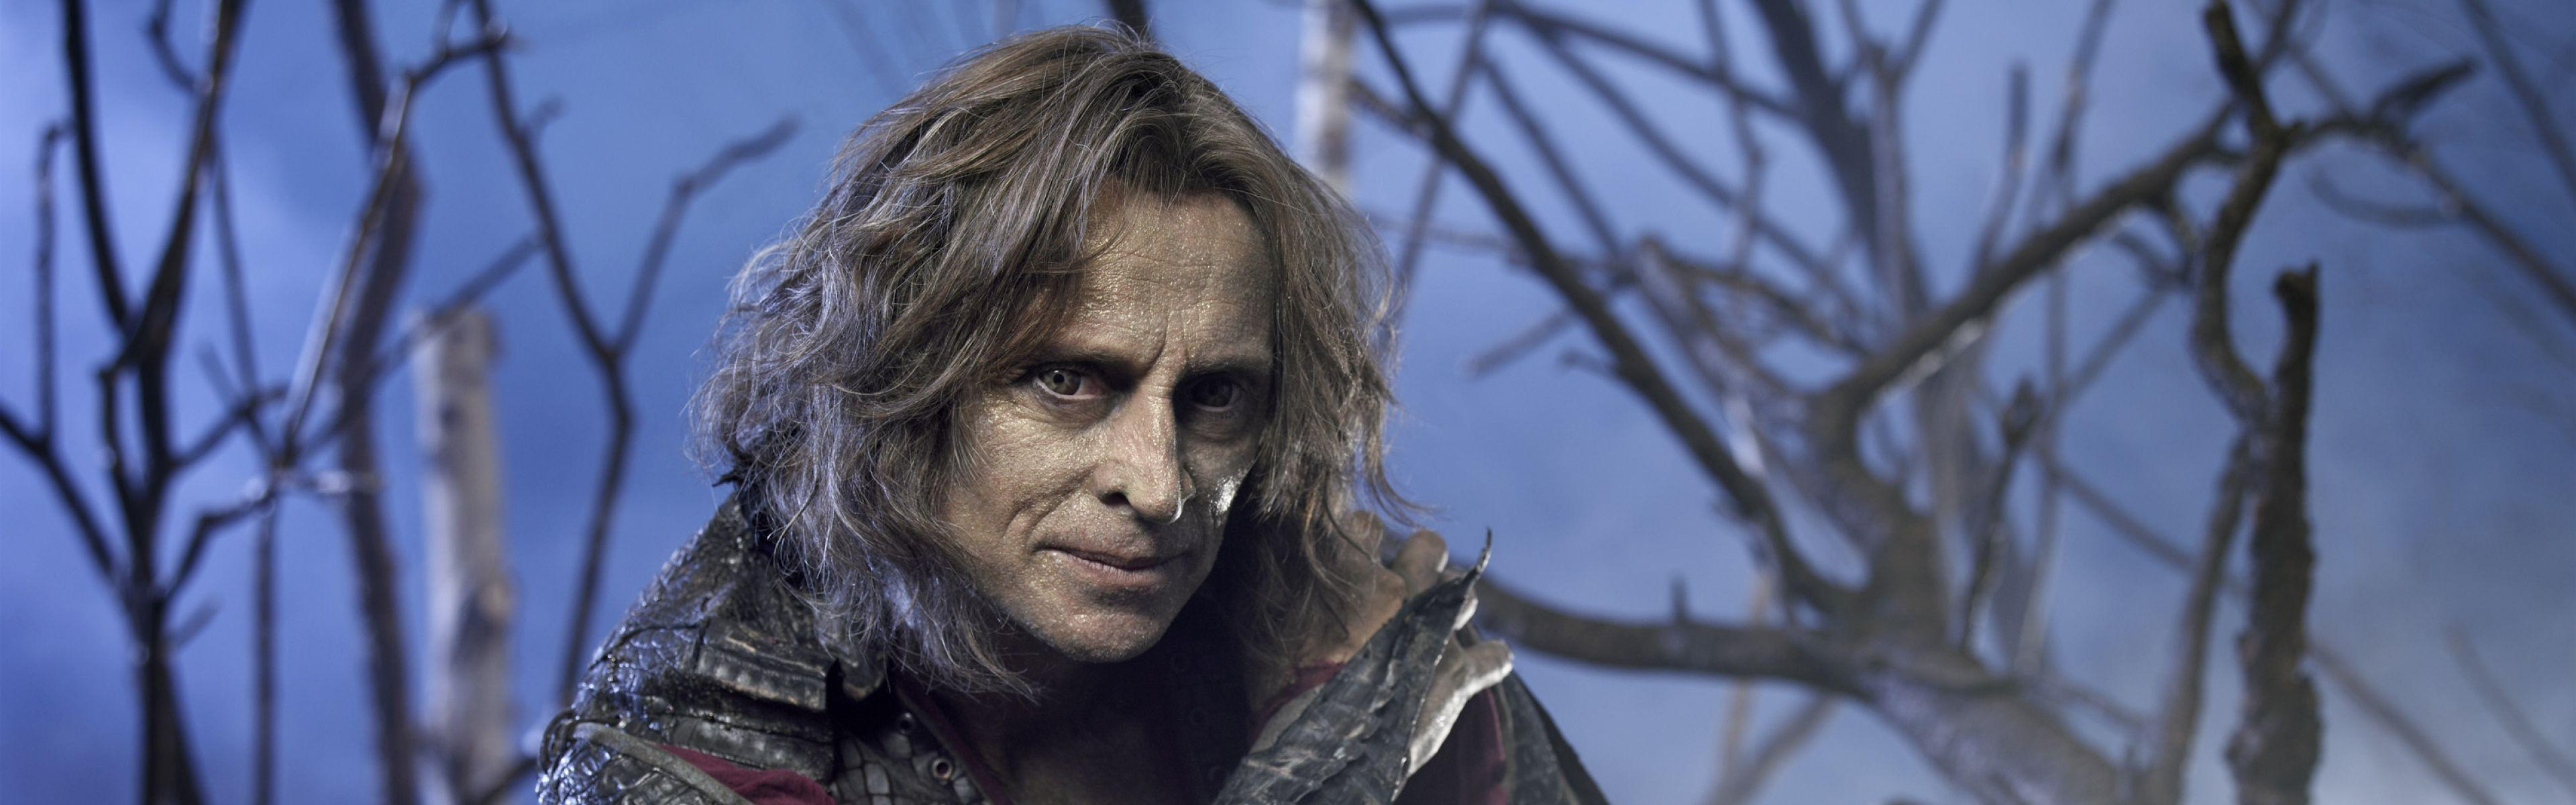 Download Wallpaper 3840x1200 Once upon a time, Robert carlyle ...